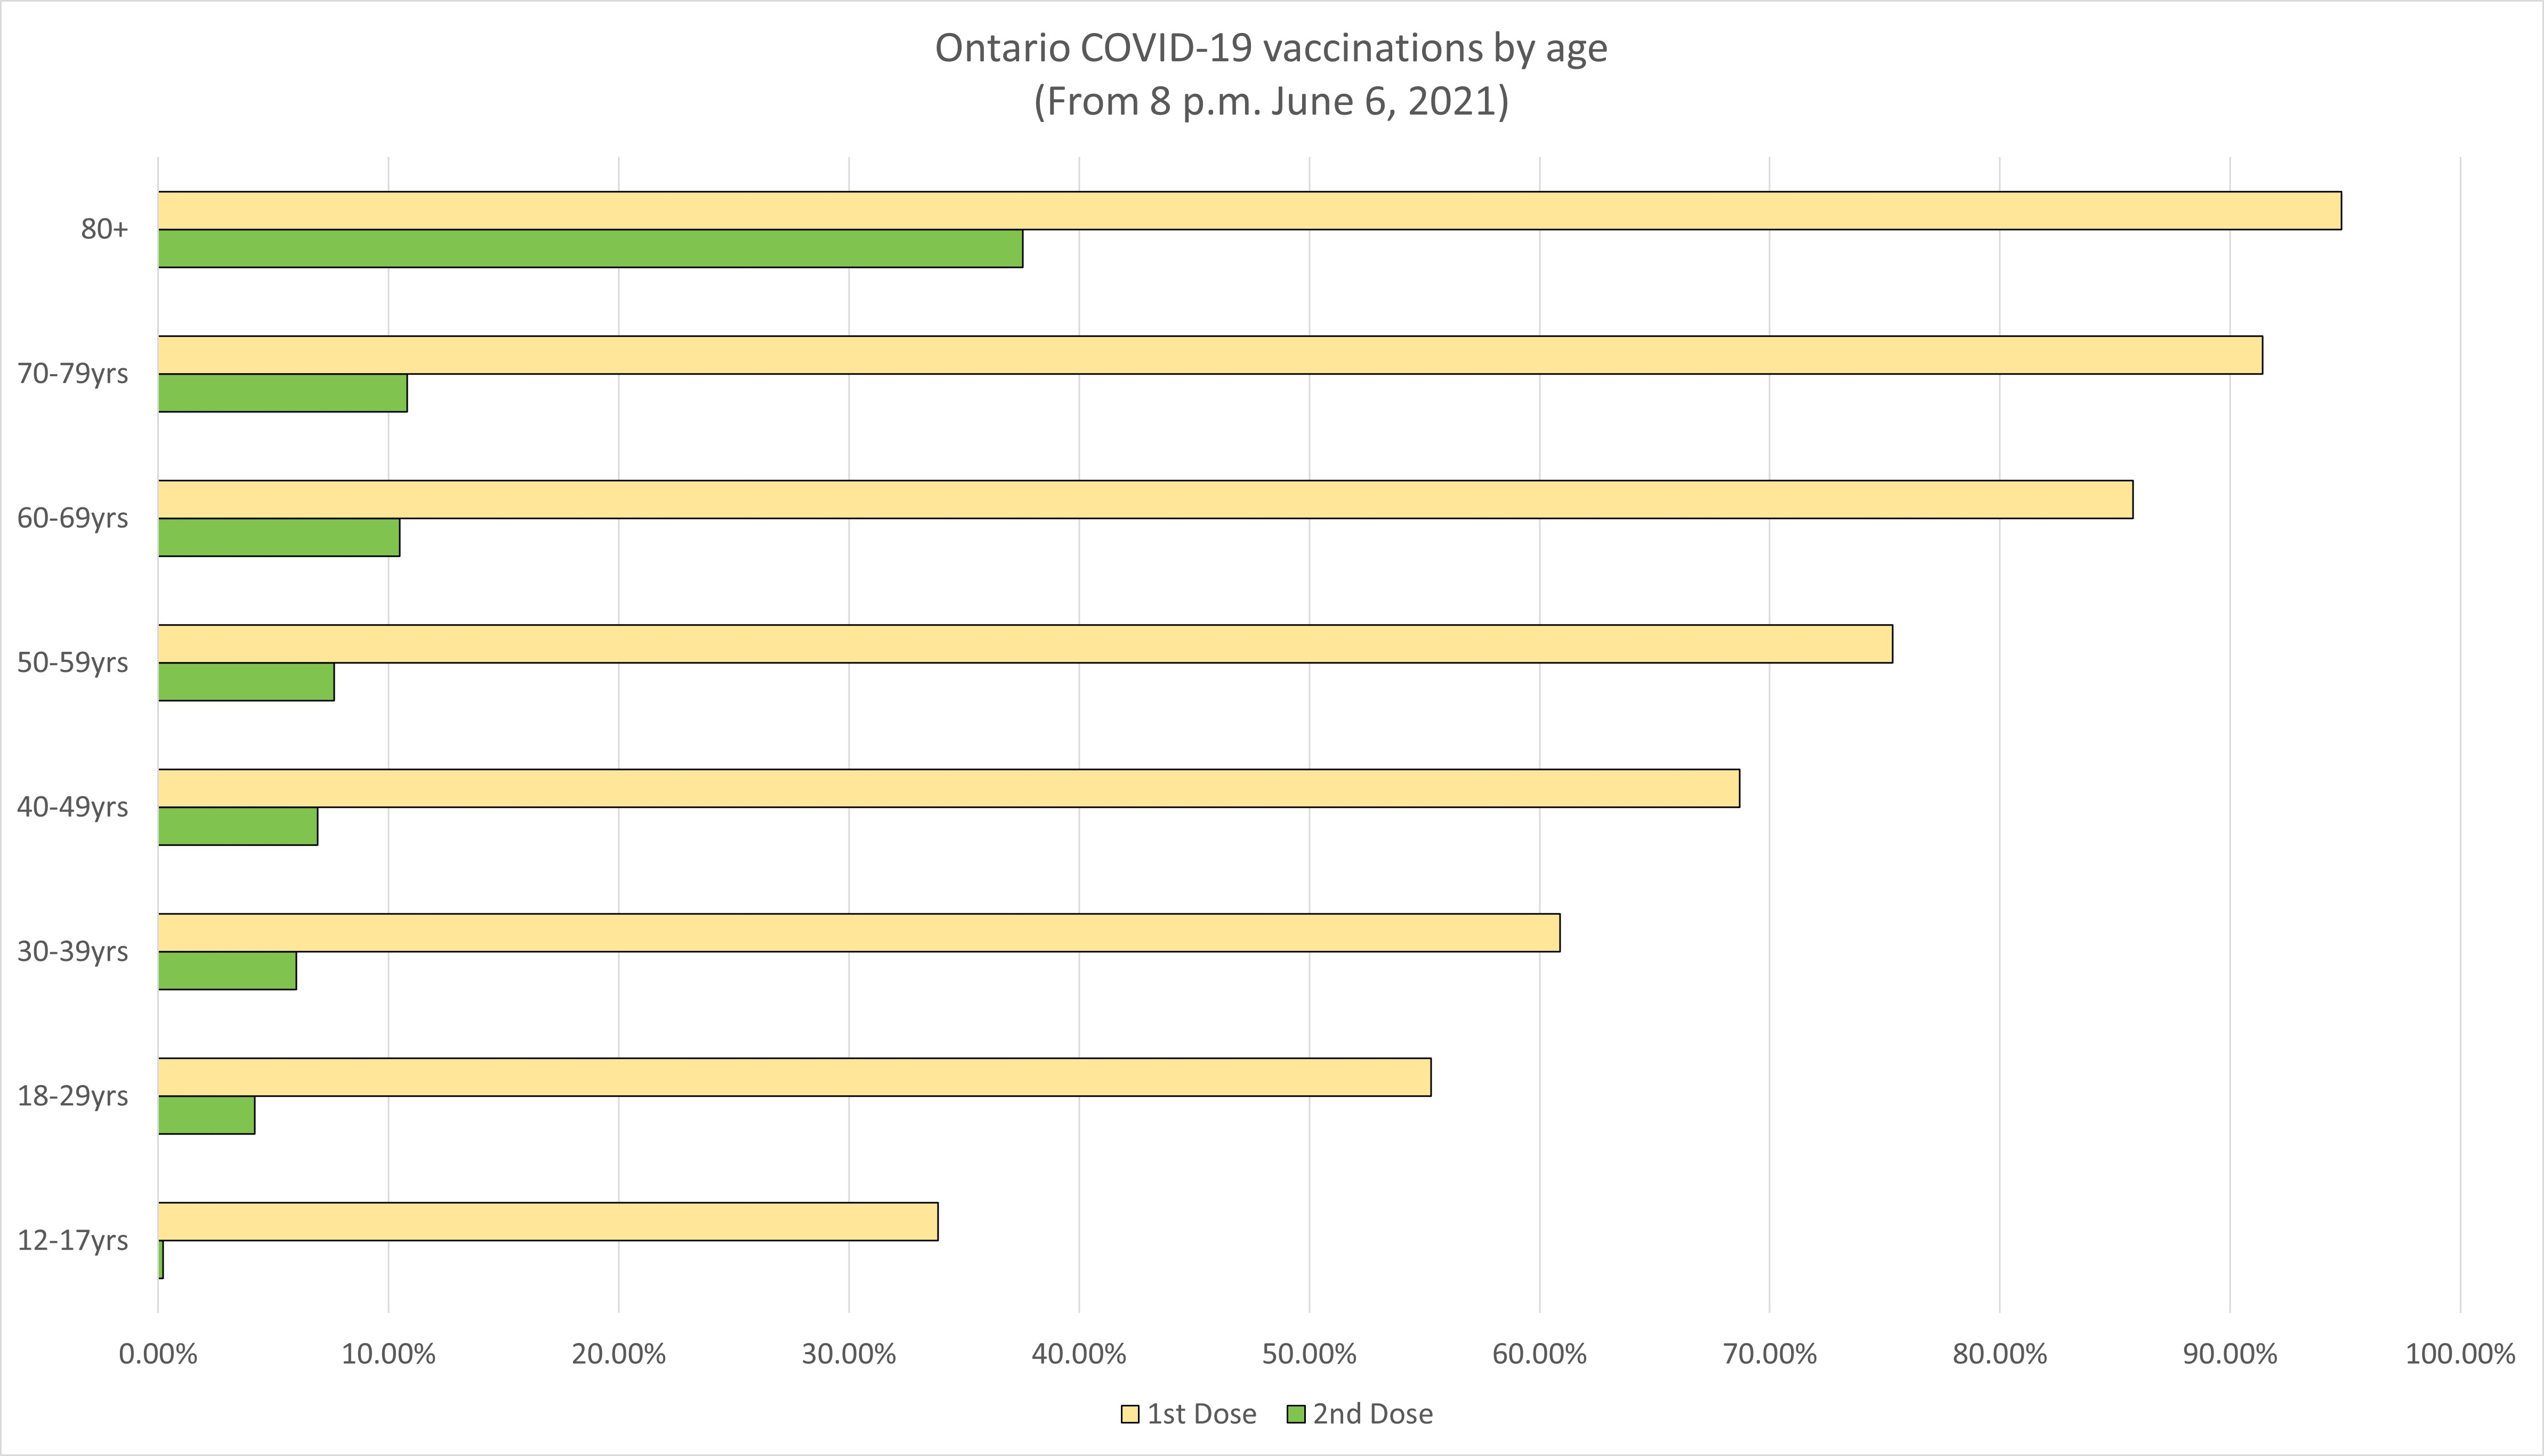 Graph showing COVID-vaccination data by age in Ontario